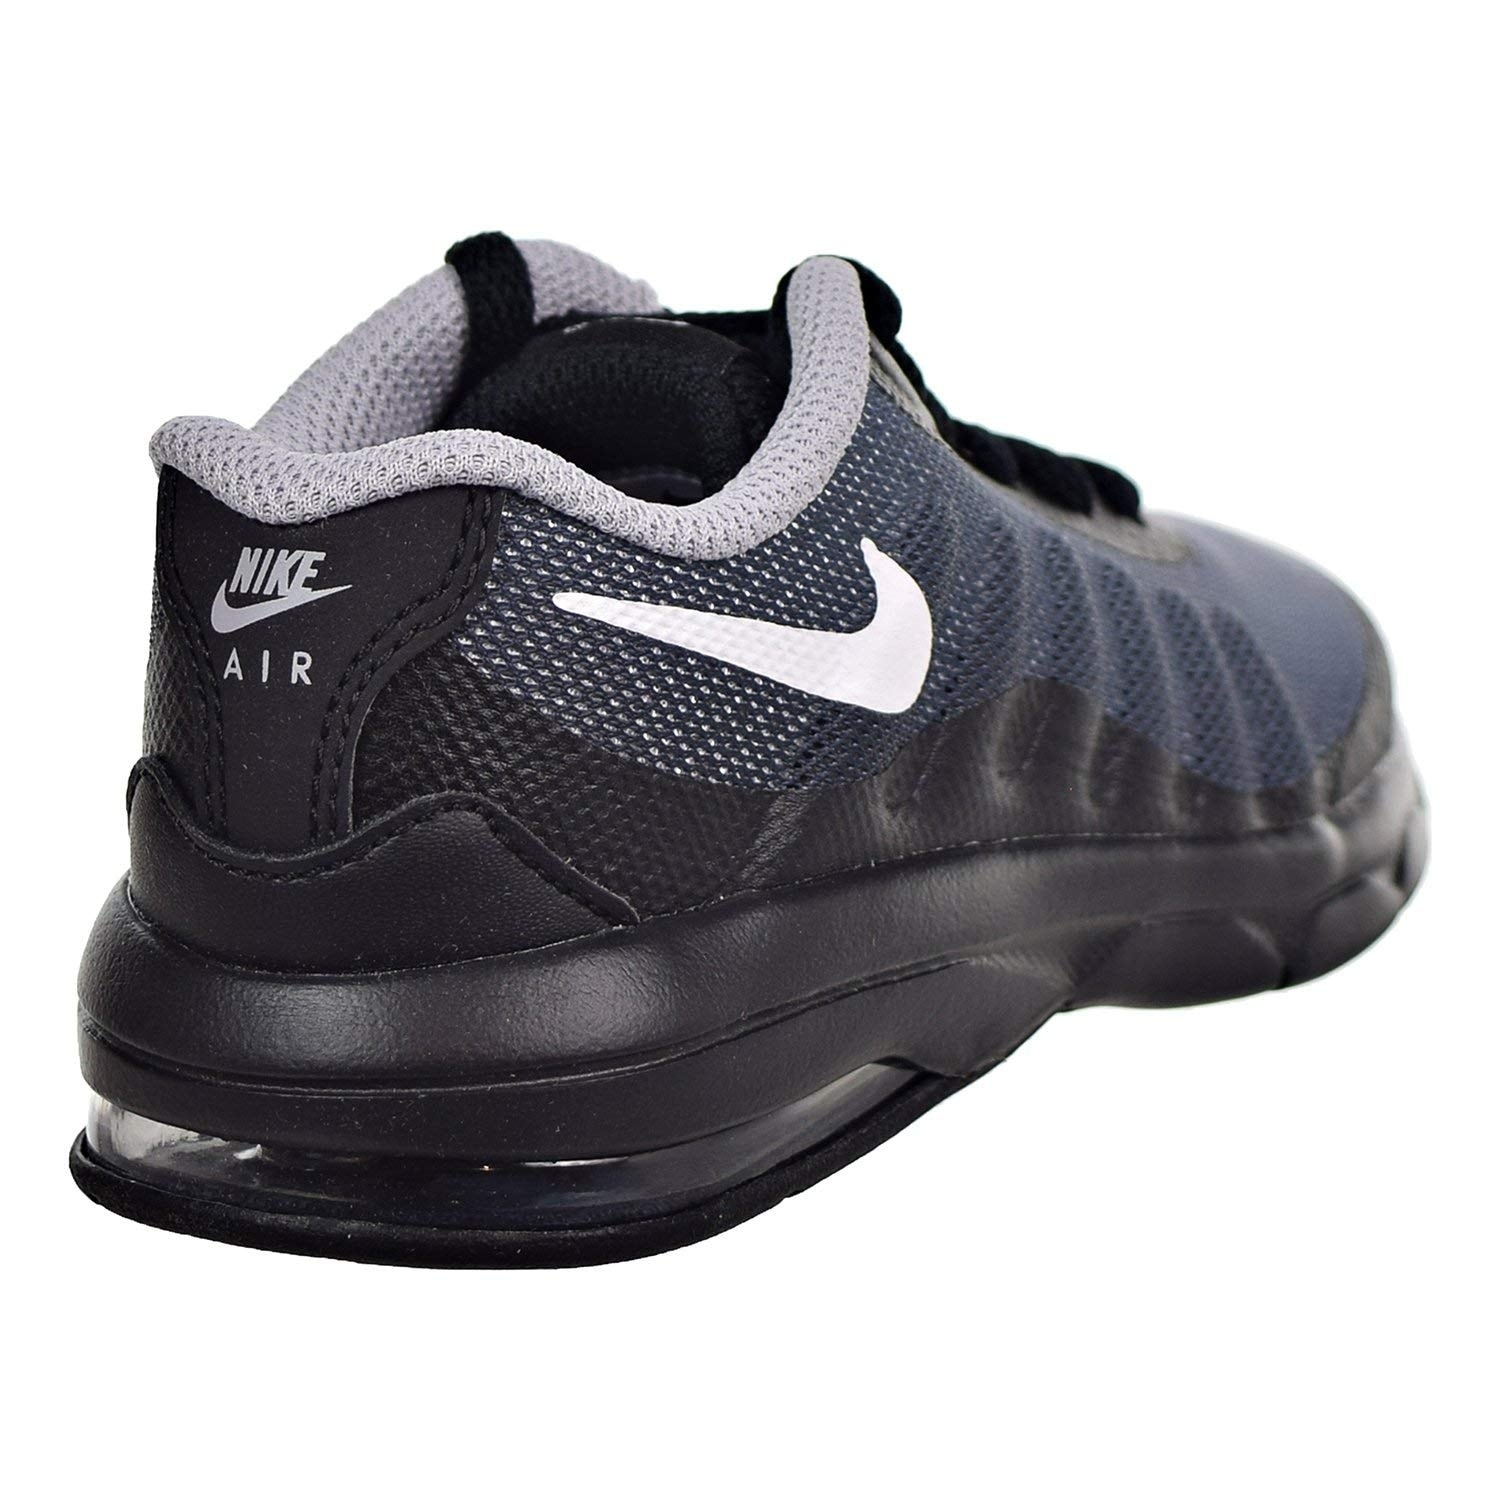 61c1503101 Shop Nike Air Max Invigor Print (Ps) Little Kids Sneakers Black/White/Wolf  Grey Ah5259-001 (1 M Us) - Free Shipping Today - Overstock - 25591262